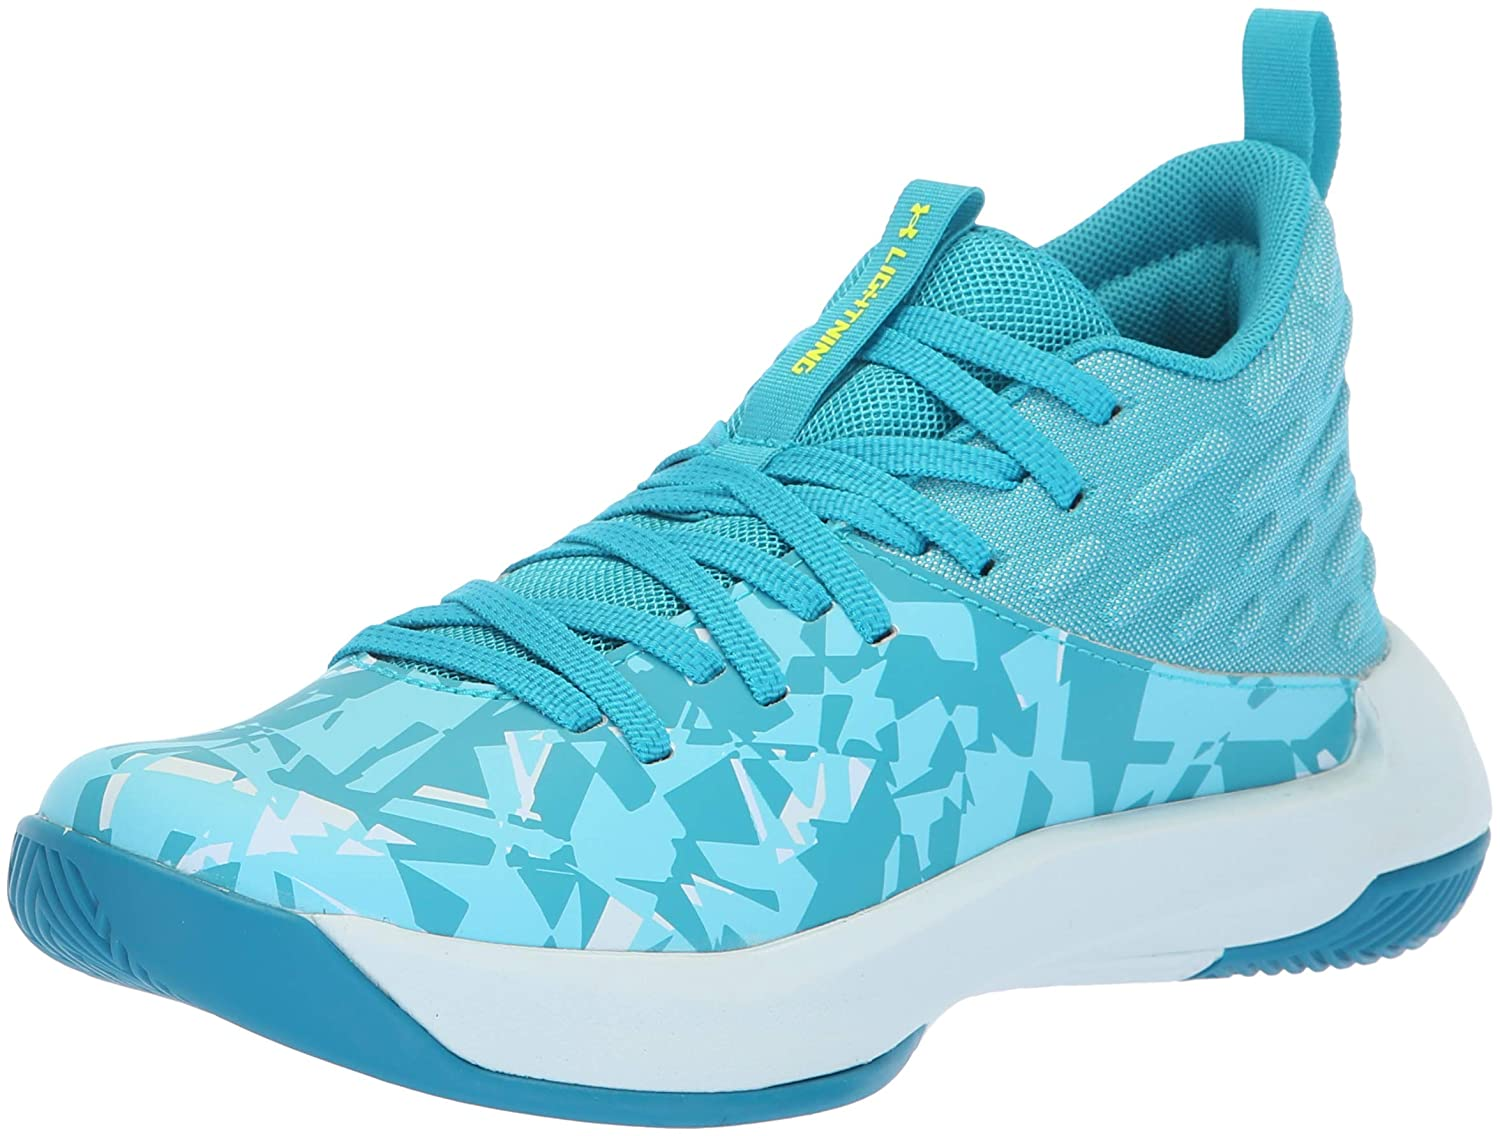 Under Armour Girls' Grade School Lightning 5 Basketball Shoe, Deceit (300)/Halogen Blue, 4.5 3020436